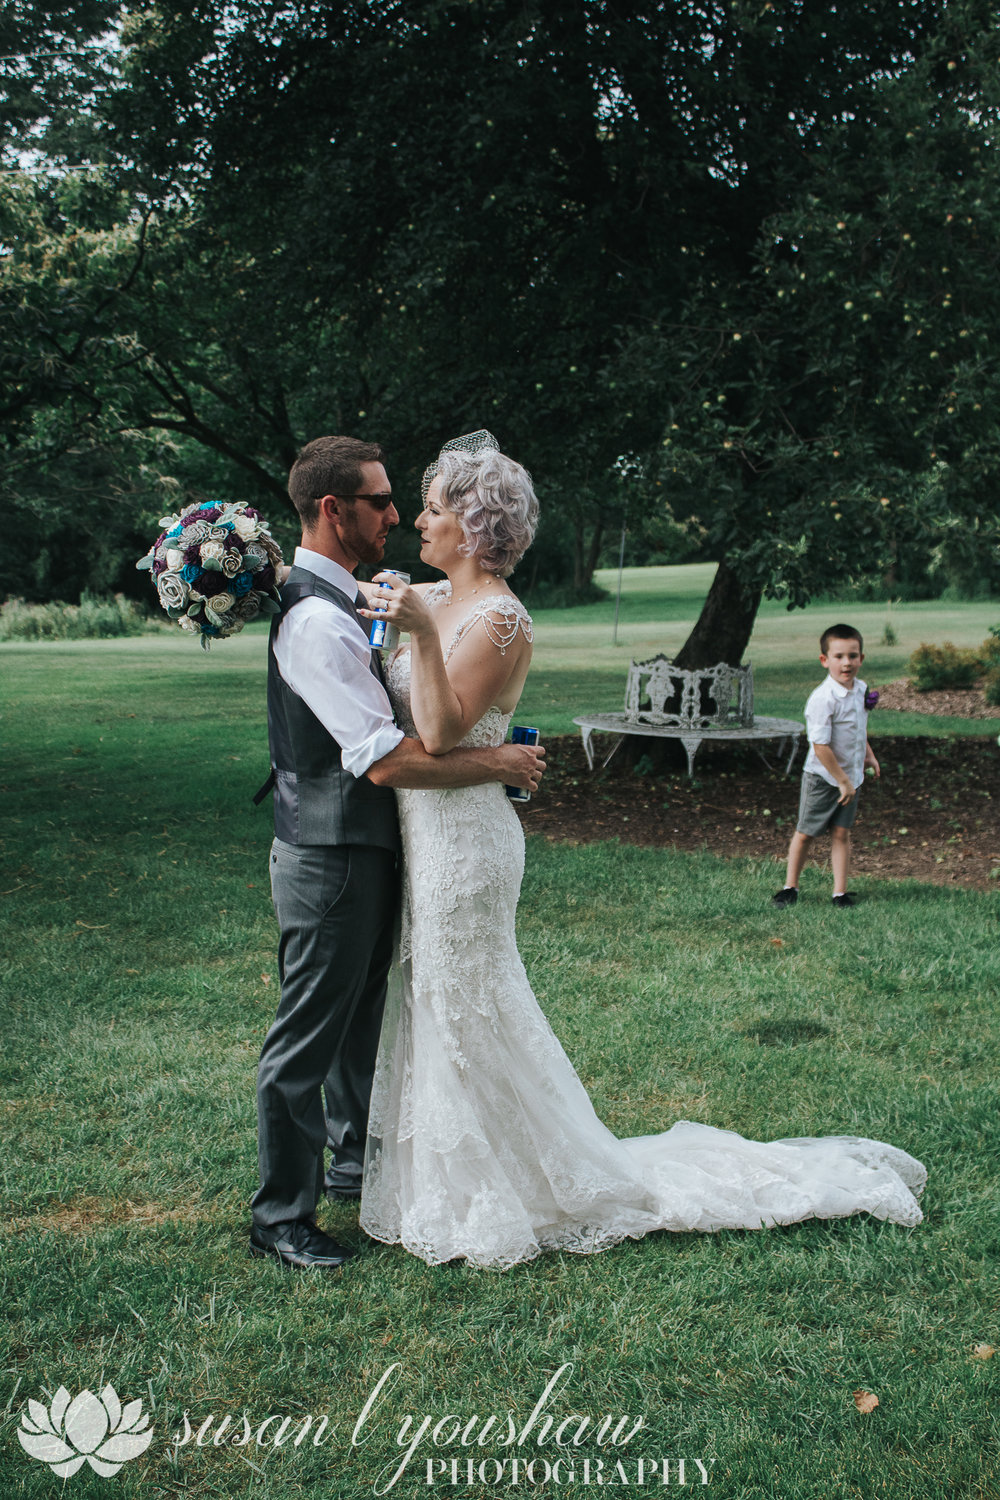 BLOG Kissy and Zane Diehl 07-14-2018 SLY Photography-93.jpg